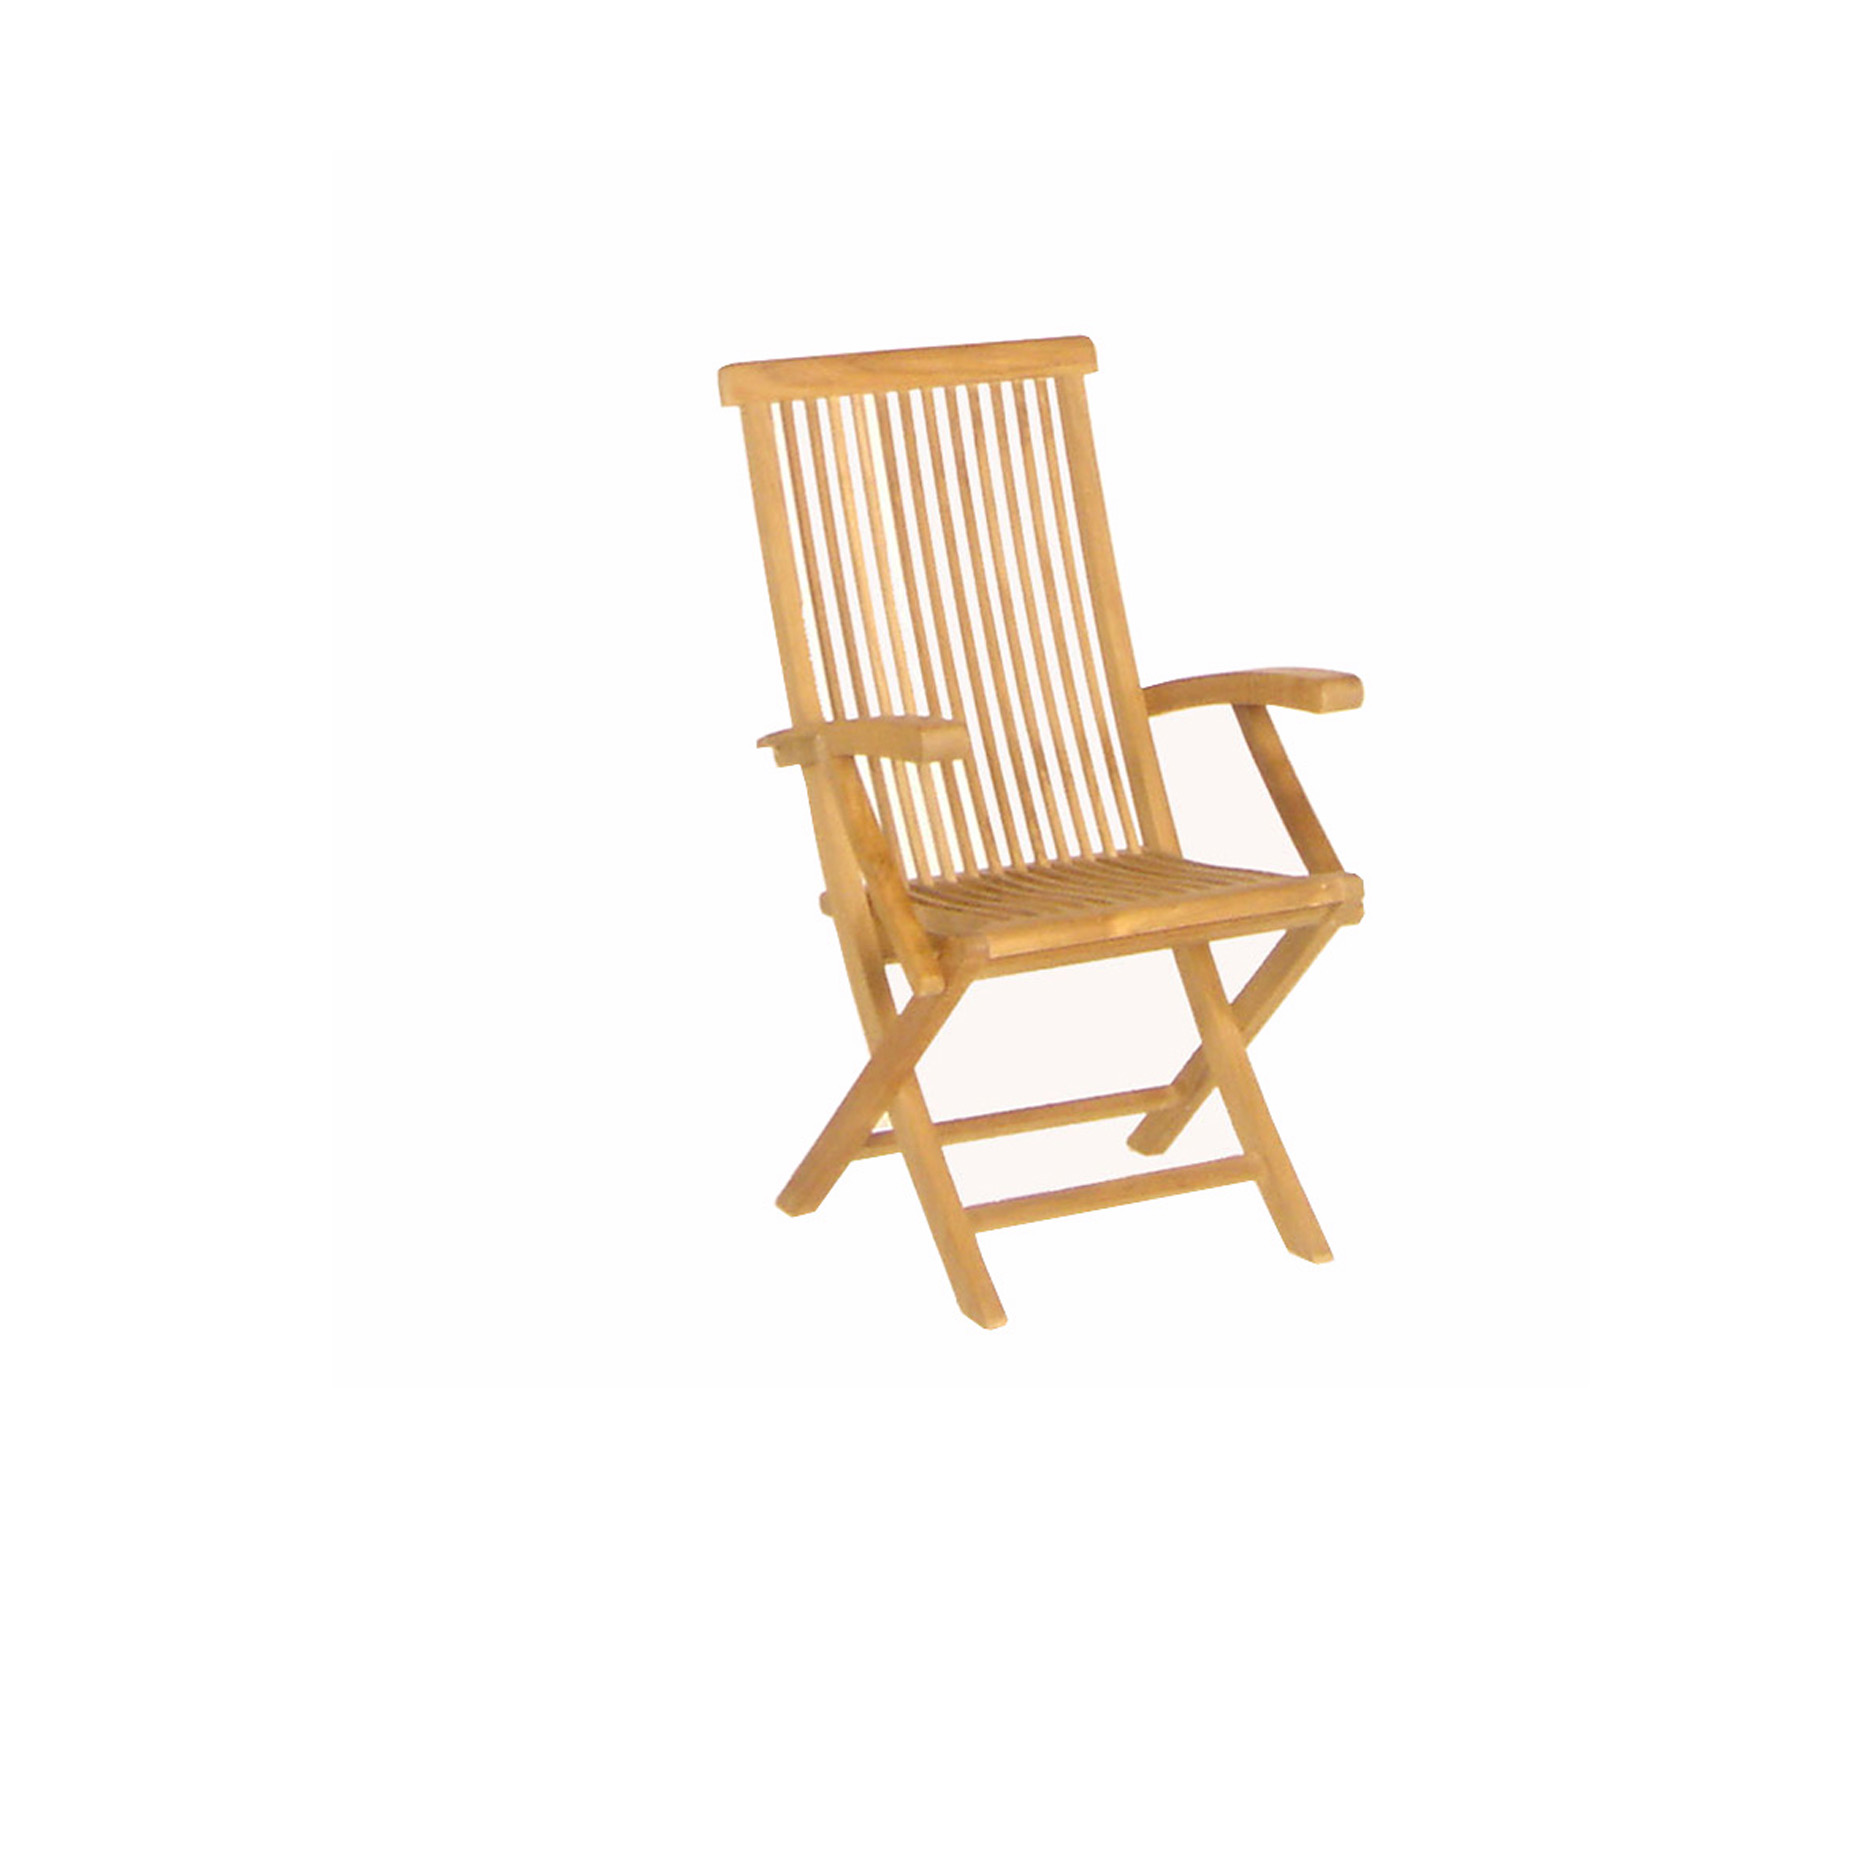 quality folding chairs orange living room chair teak arm klipklap asia concept high